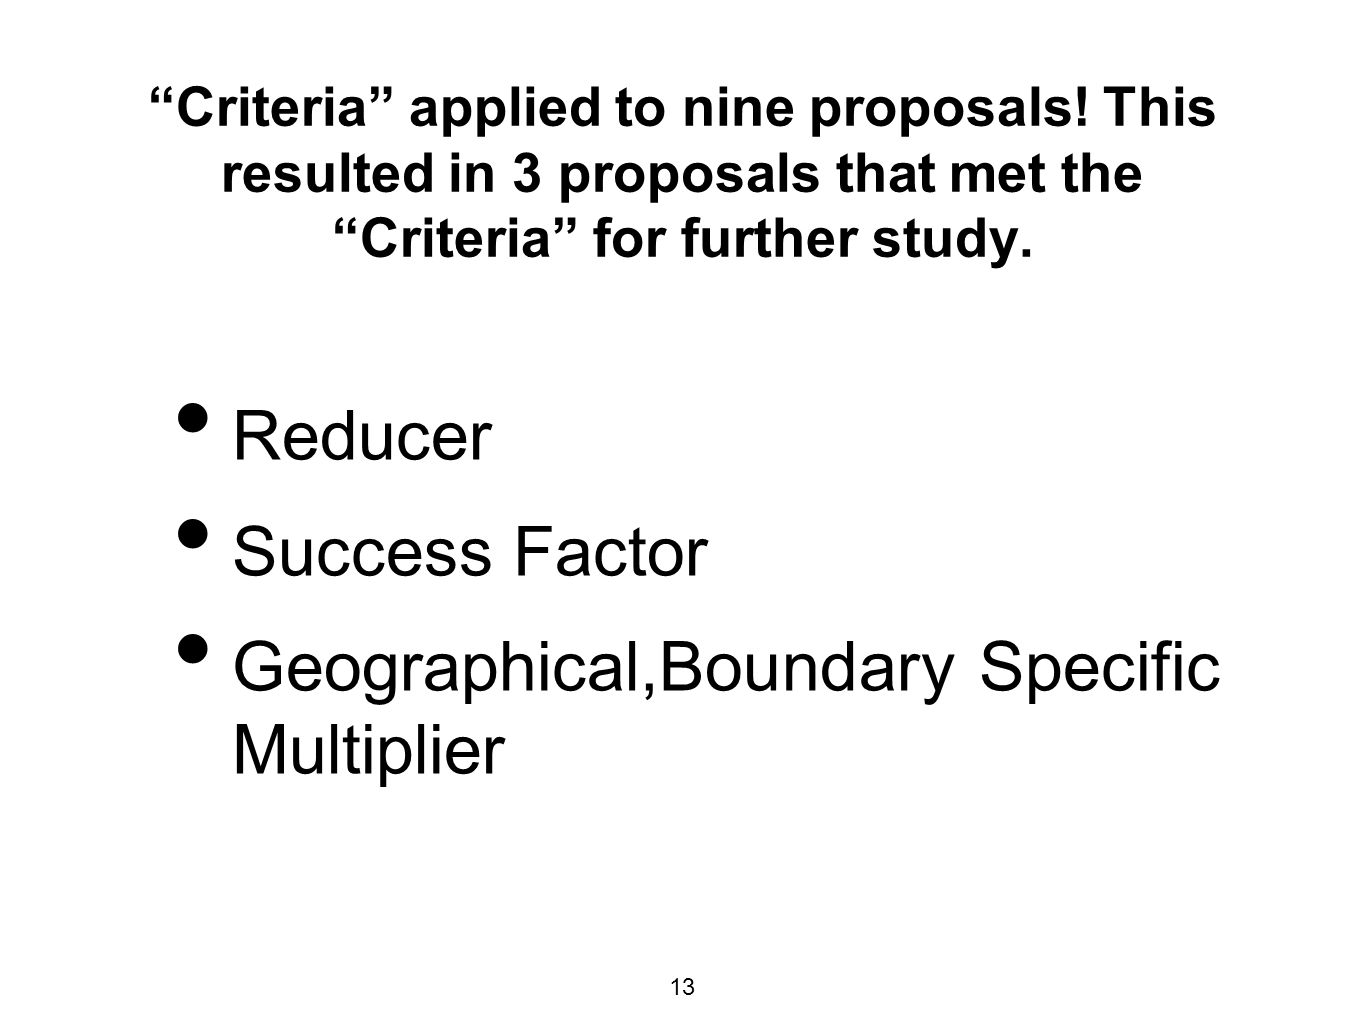 Criteria applied to nine proposals.